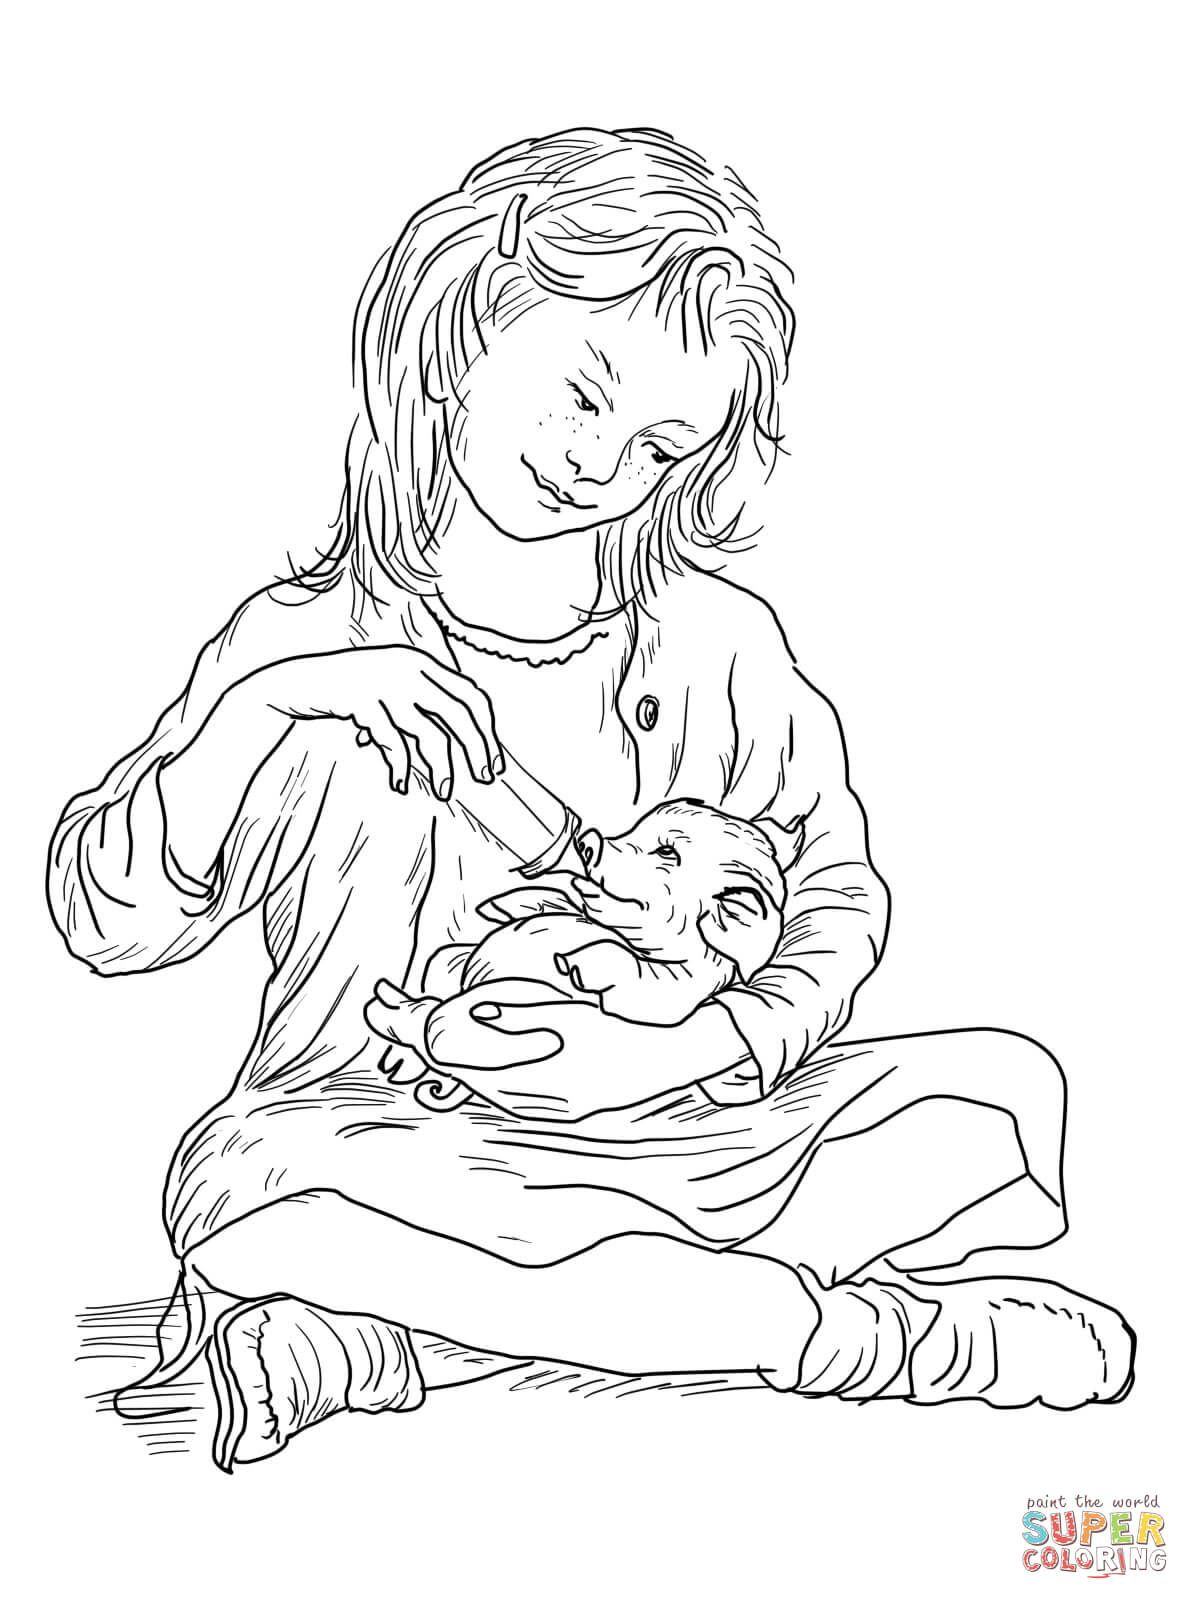 Fern Feeding Wilbur Coloring Page From Charlotte S Web